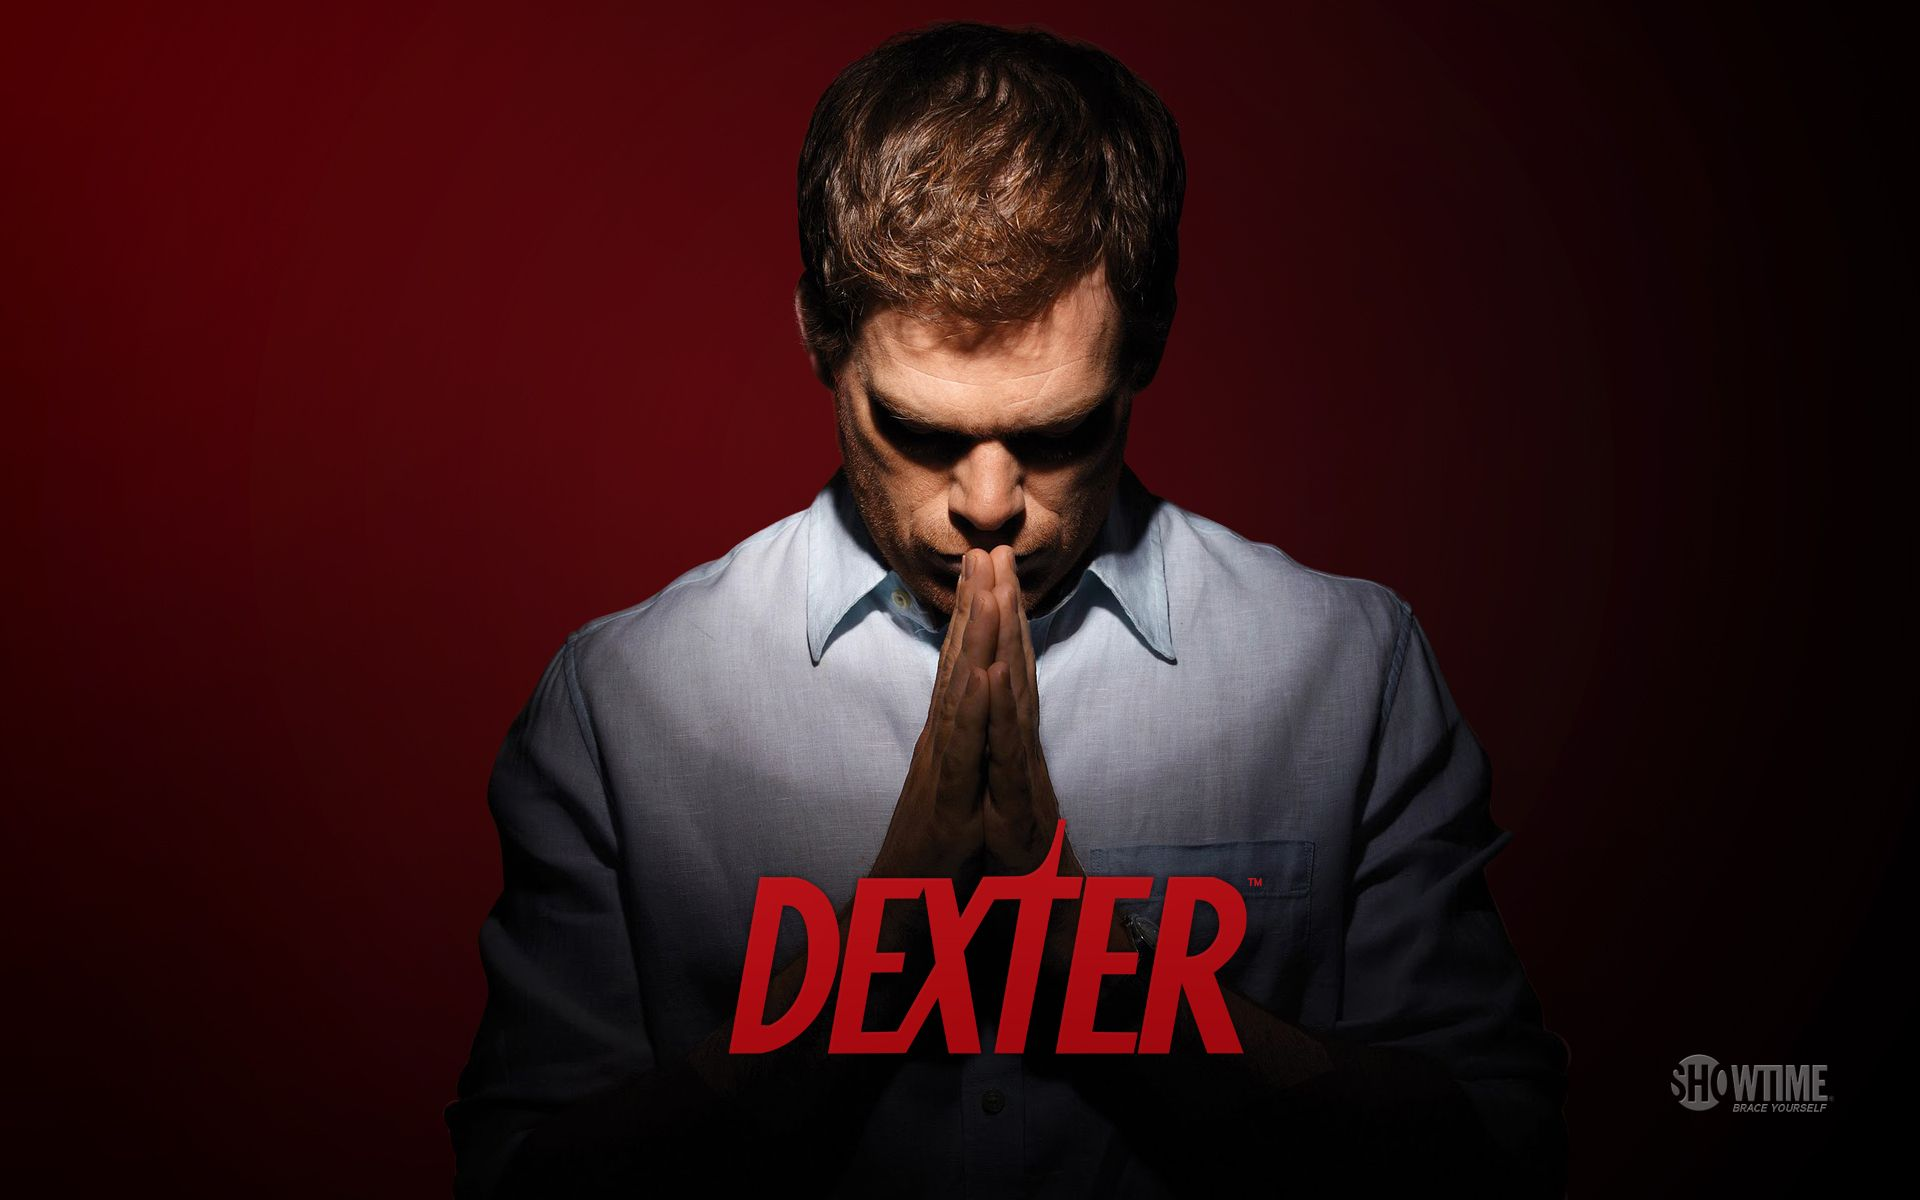 Dexter Season 6 Wallpaper 4 Hd By Inickeon D4ek2hv Jpg 1920 1200 Dexter Wallpaper Dexter Seasons Dexter